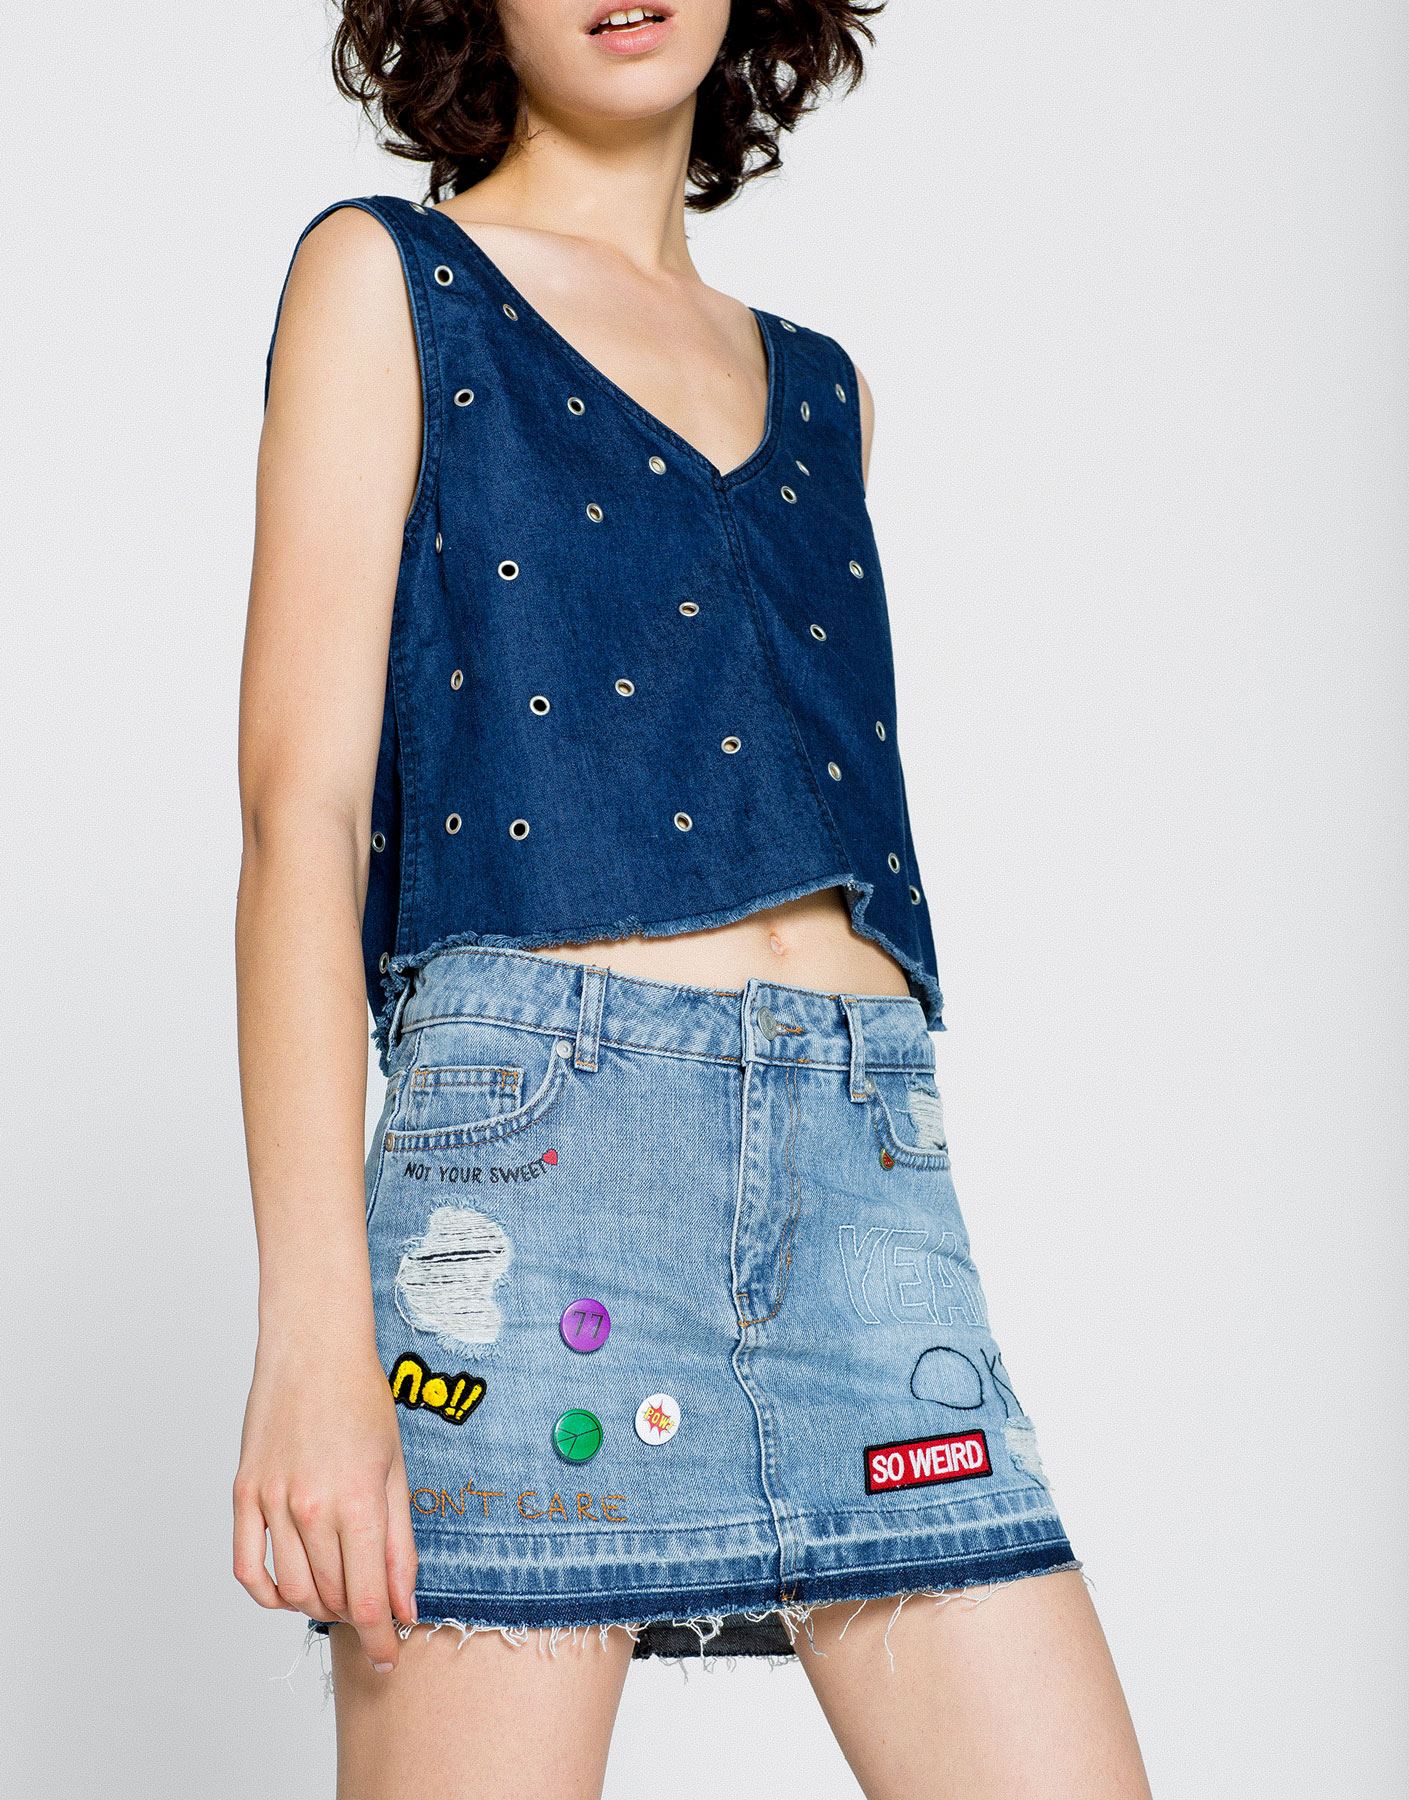 Denim skirt with design